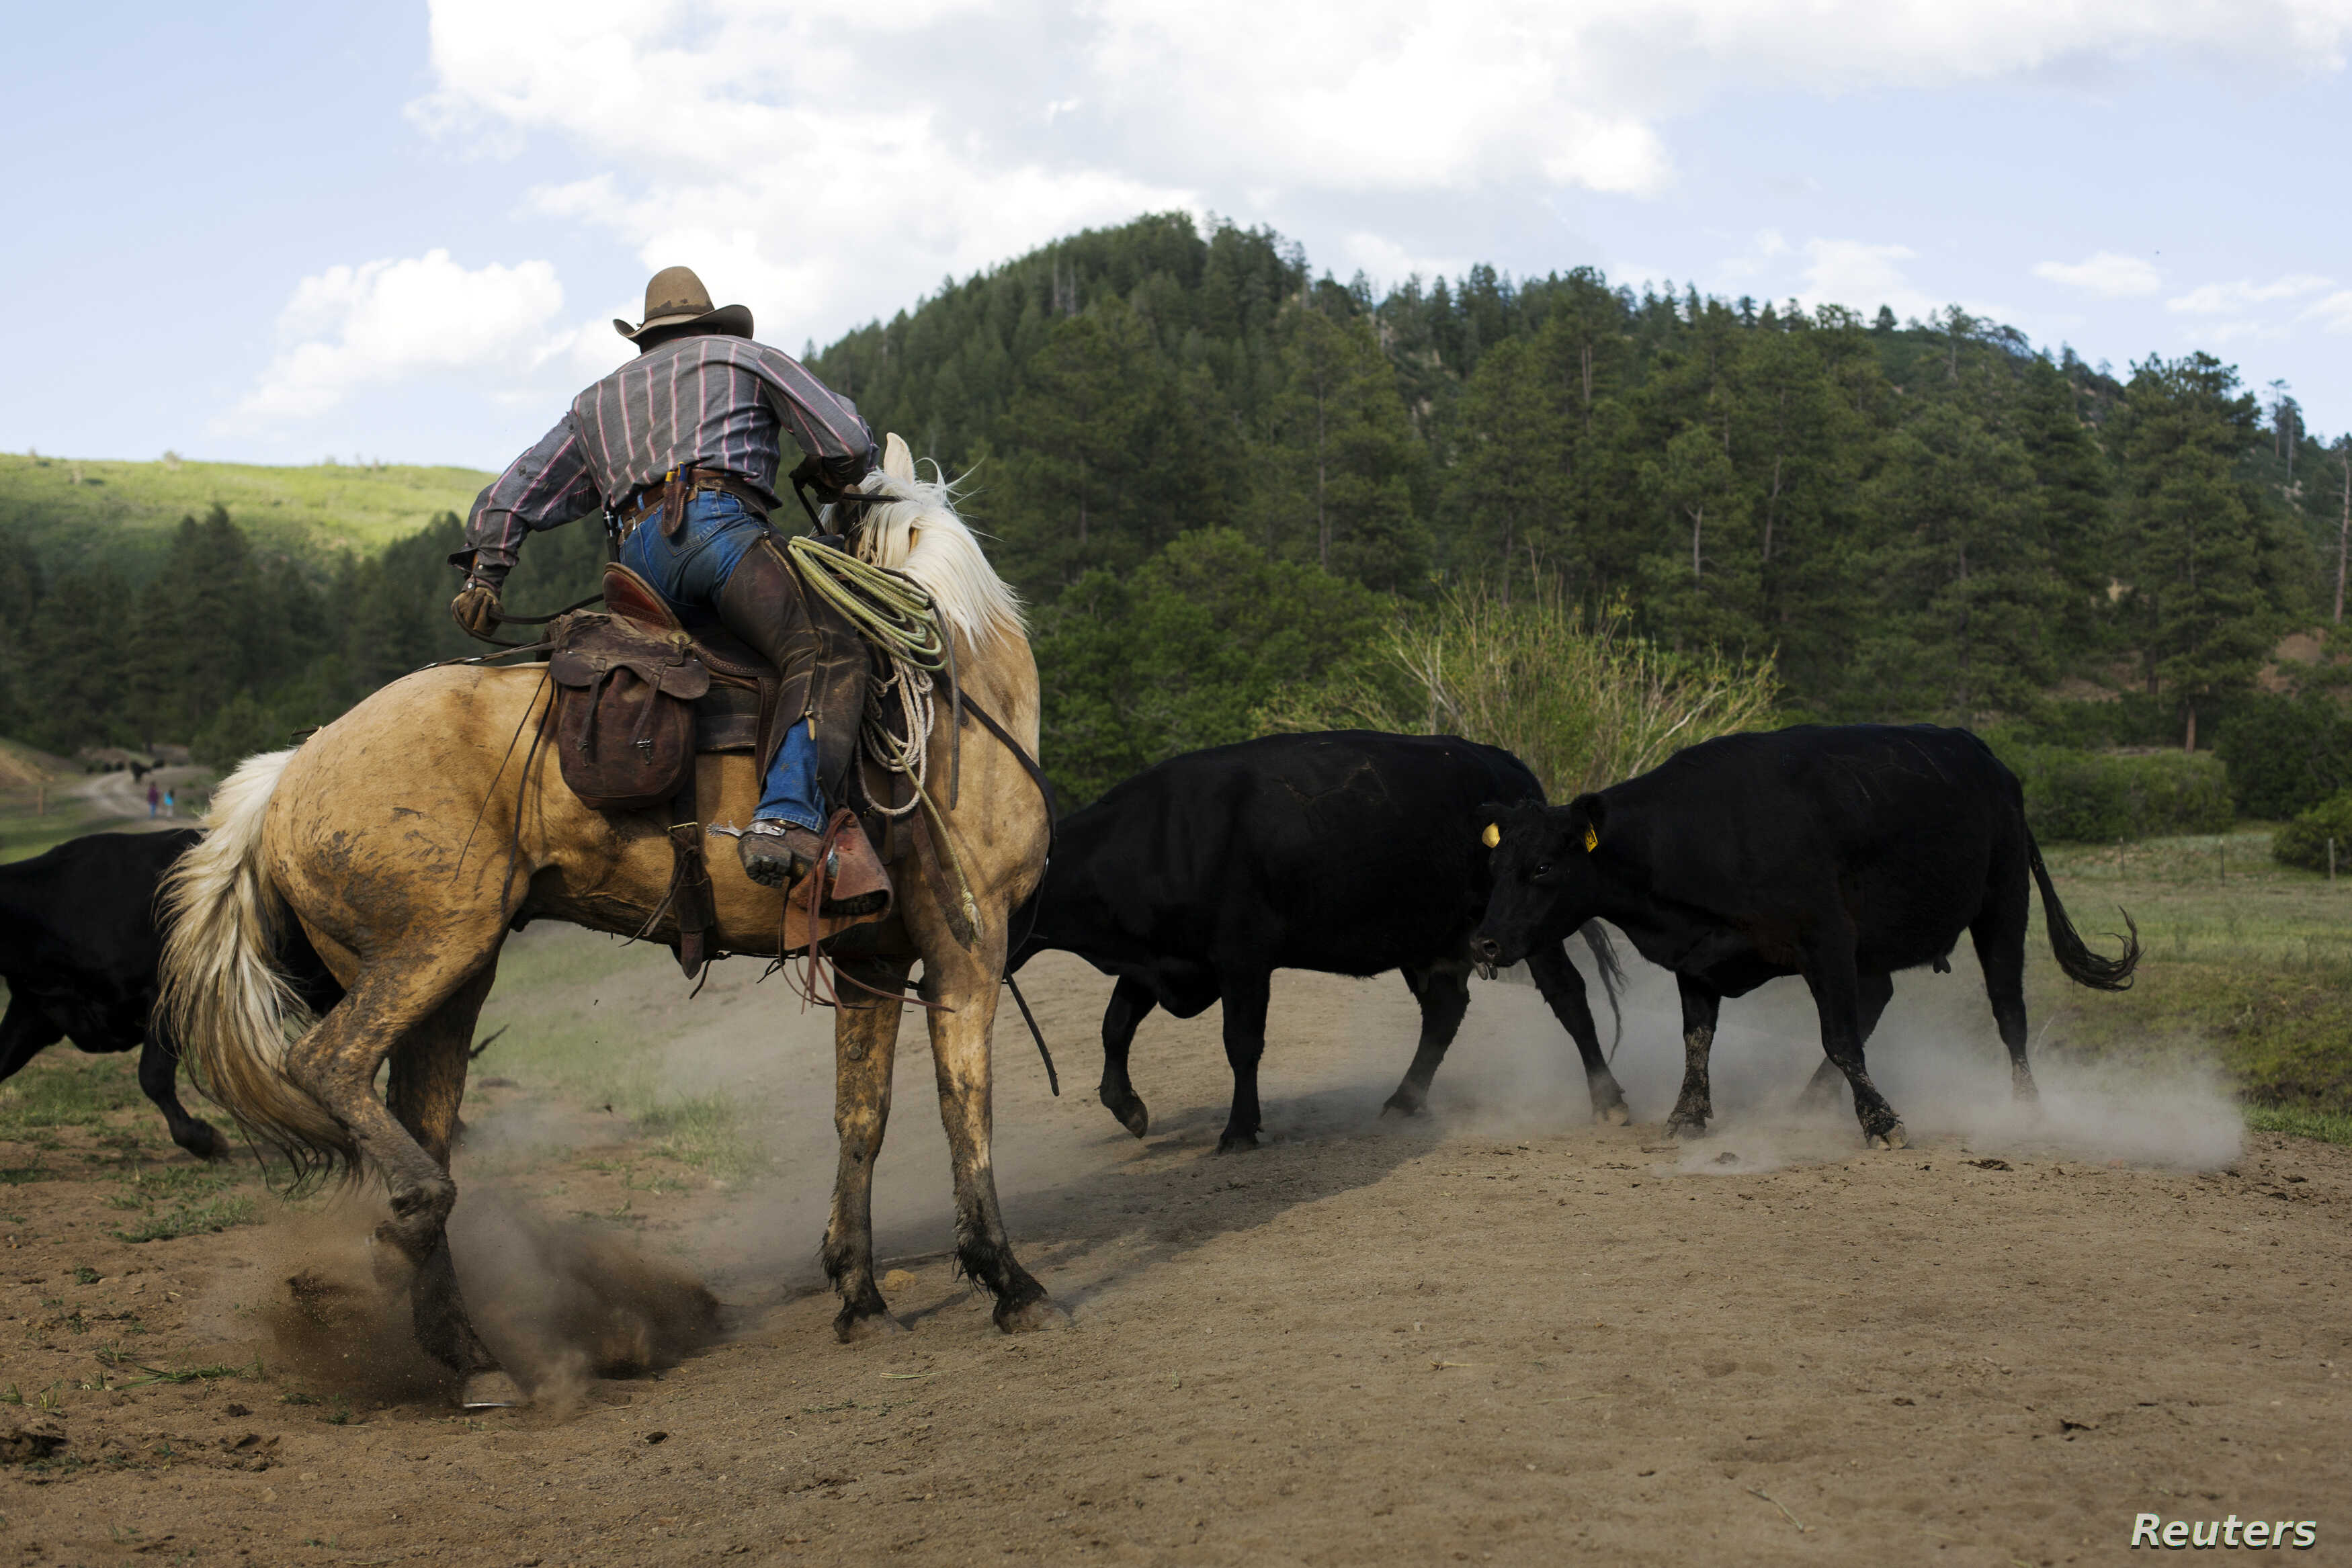 Cowboy Rollo Mangus works to cut mothers and their calves away from the larger herd near Ignacio, Colorado June 12, 2014, part of a management effort to prevent cattle from overgrazing fragile ecosystems on leased public land.